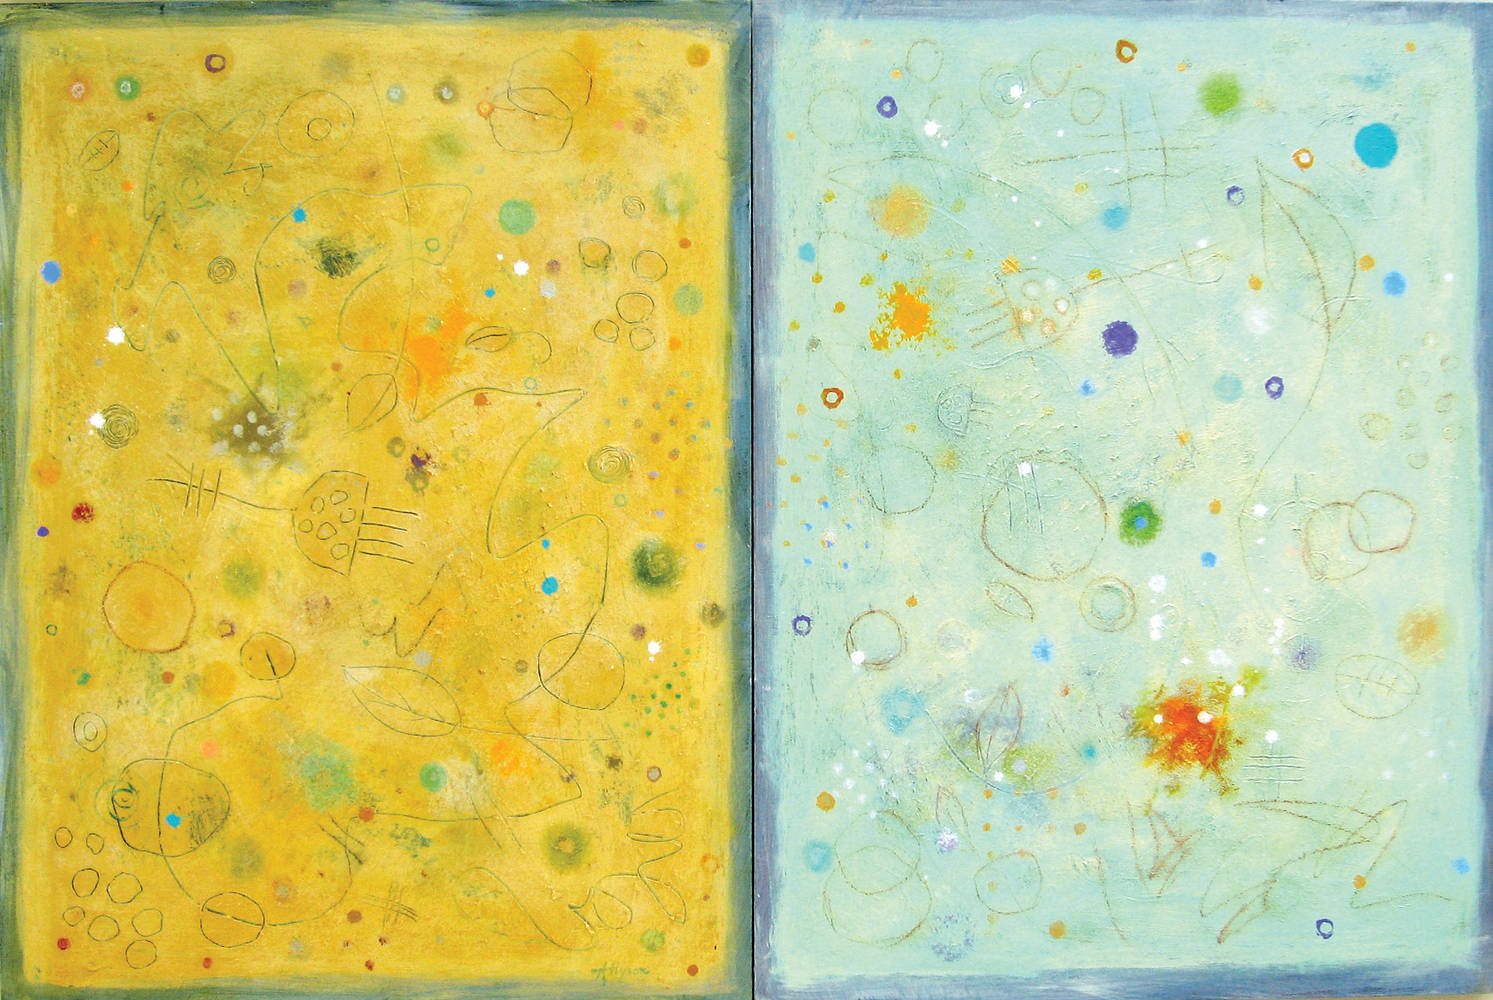 Acrylic painting Maison Du Soleil - Diptych by Allyson Malek